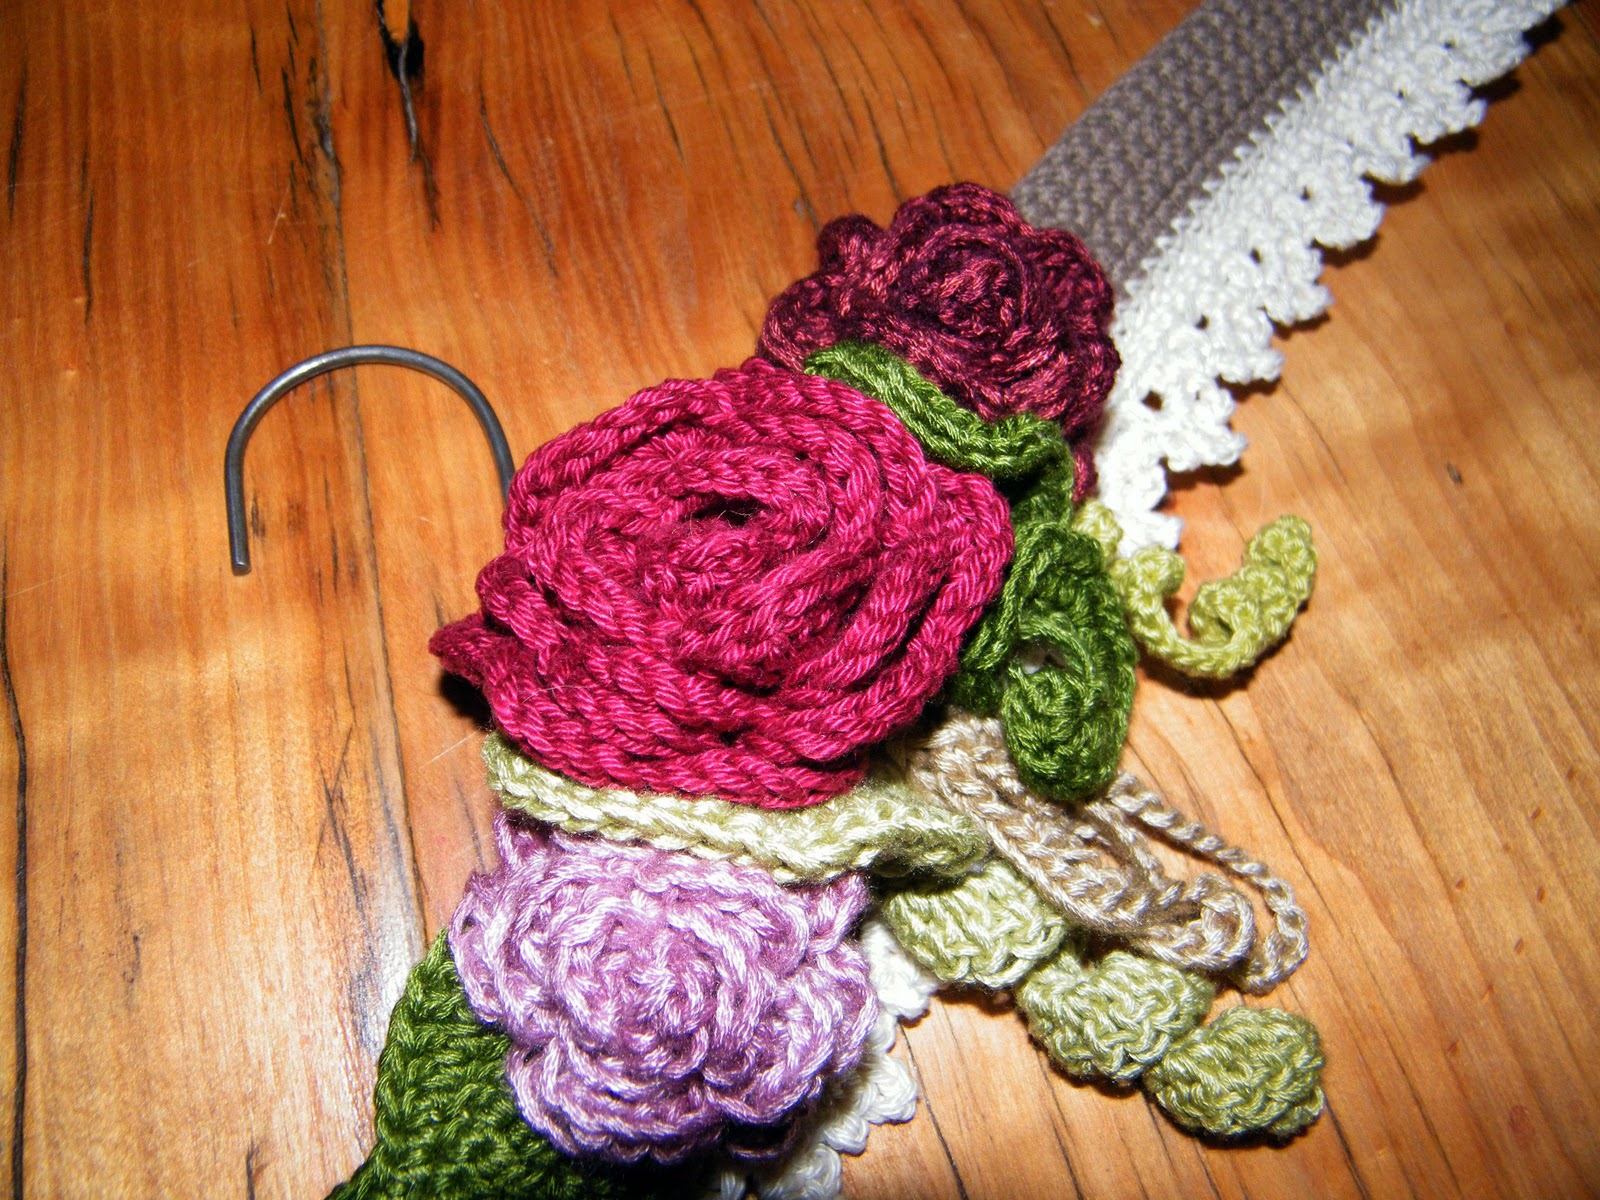 Crocheting On A Hanger : RubyRed Eclectic: My Vintage Crochet Hanger Done!